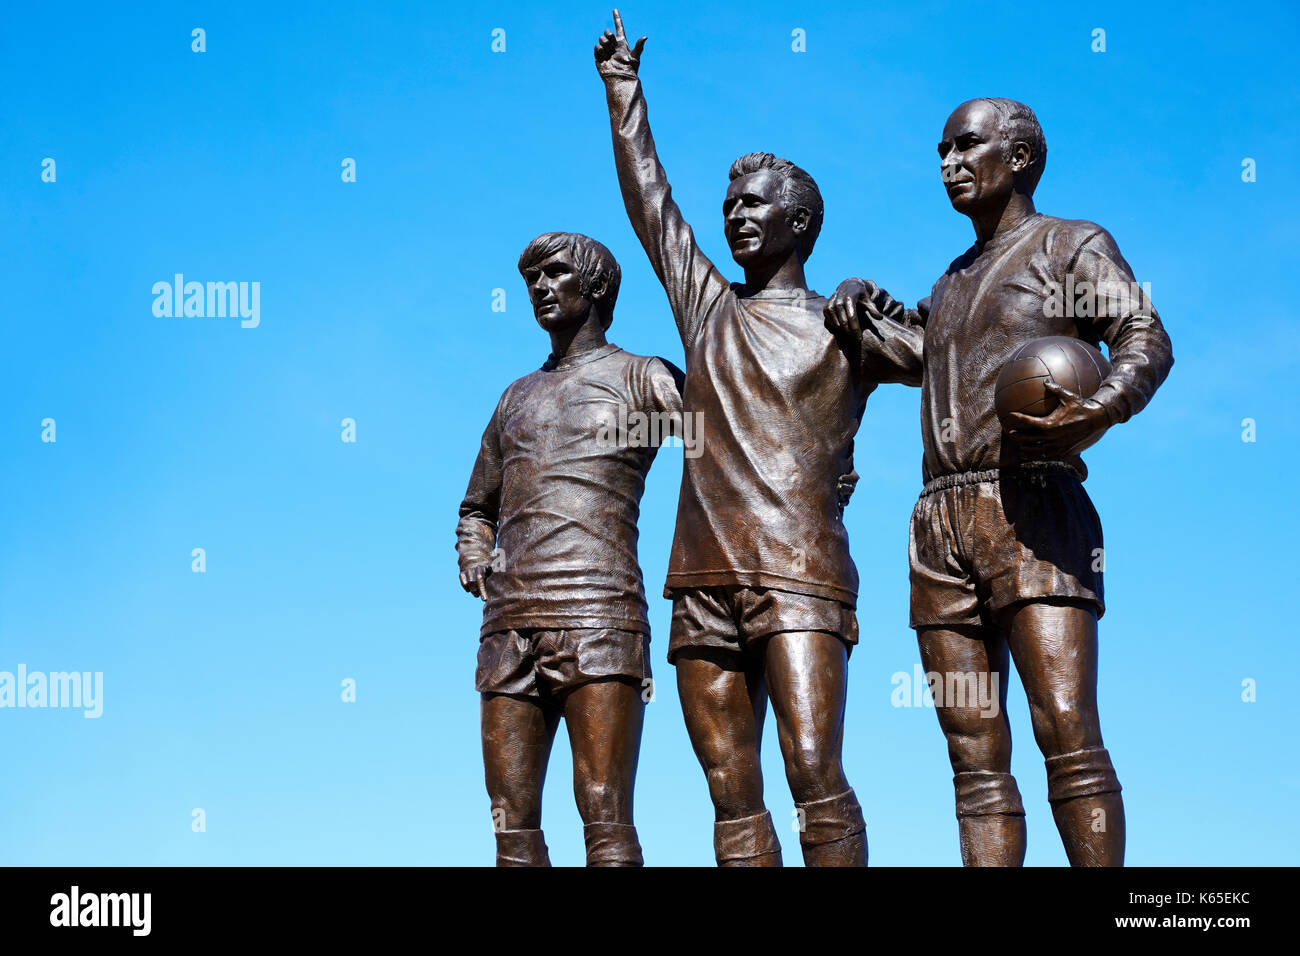 Manchester, UK - 4 May 2017: Statue Of Players Outside Manchester United Football Stadium - Stock Image